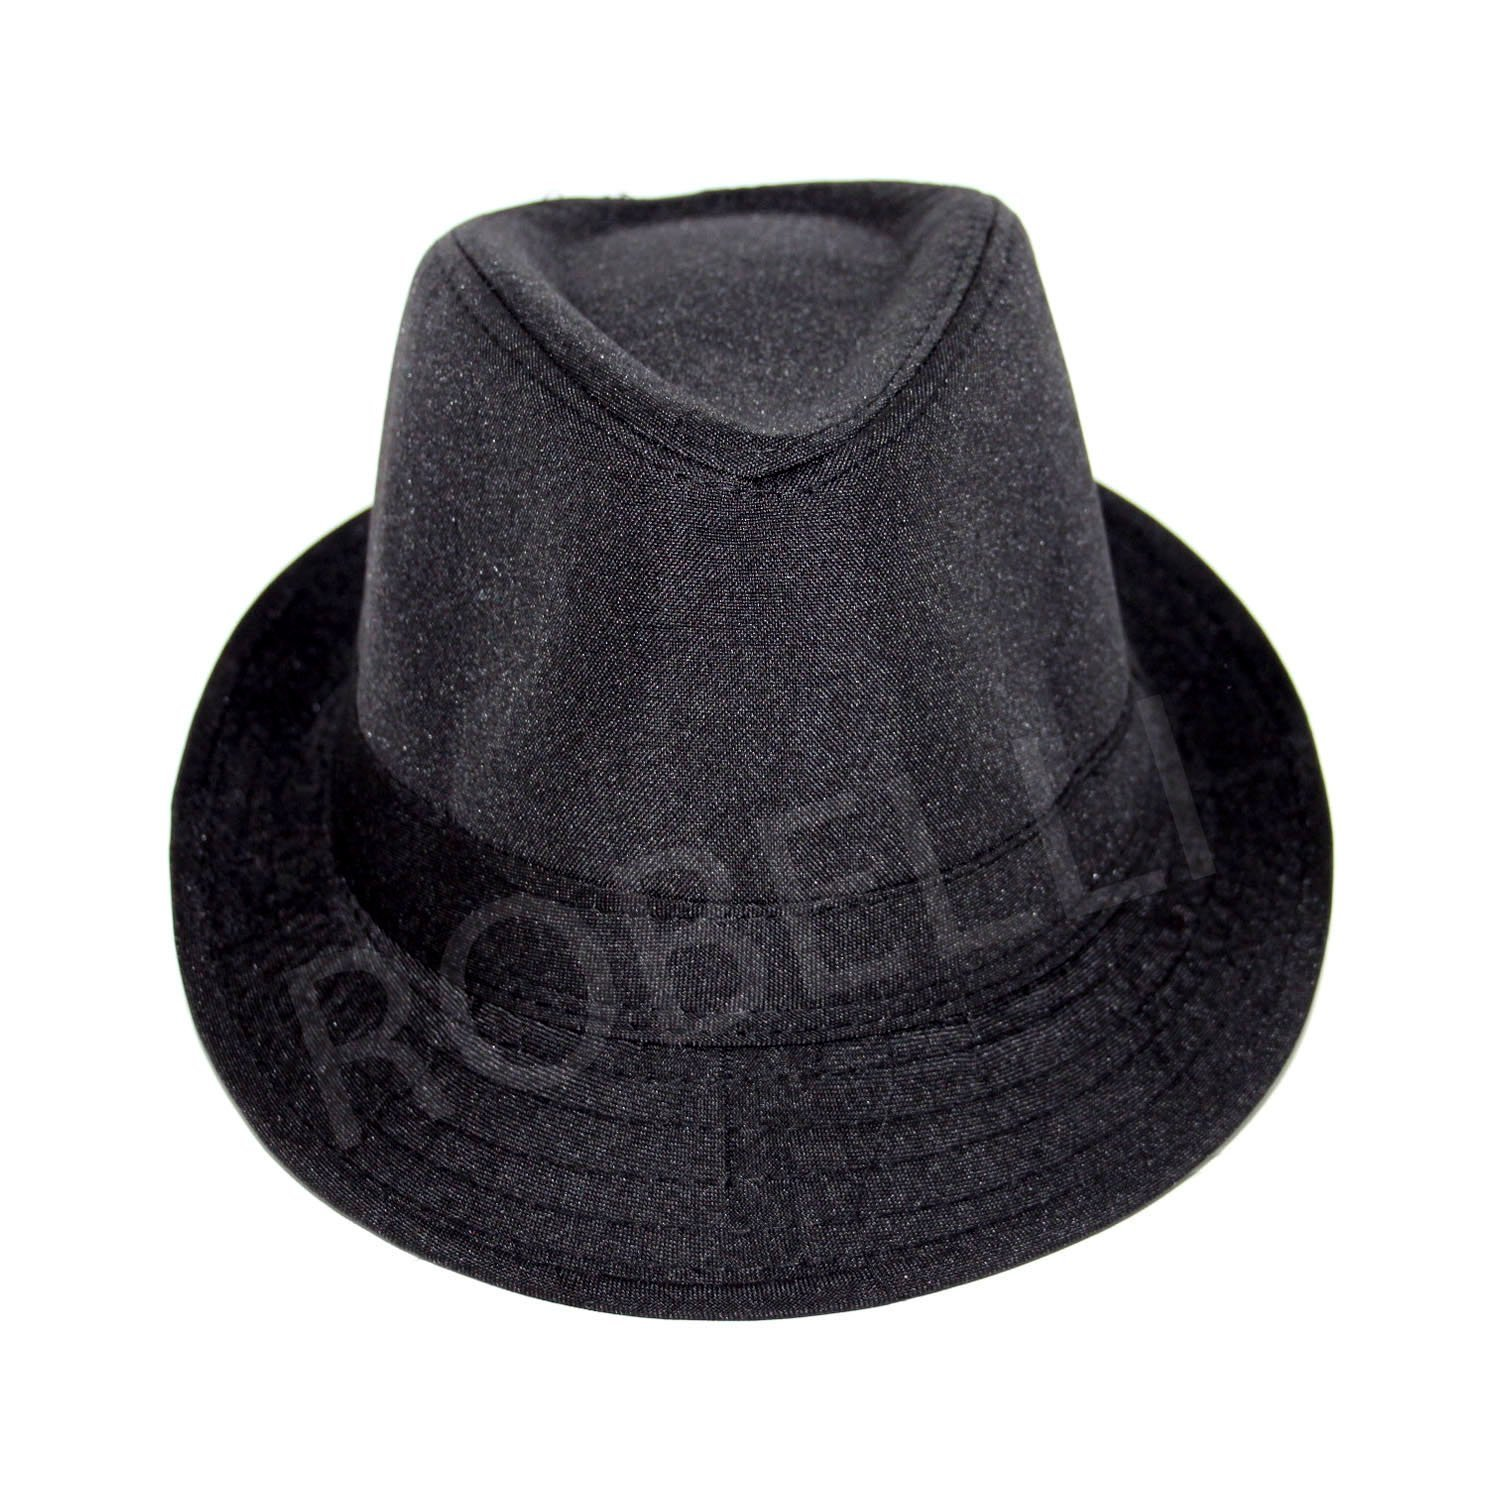 2 x Men s   Women s Fedora Hat - One Size Fits All (Black)  Amazon.co.uk   Clothing 2bb574bd0e8